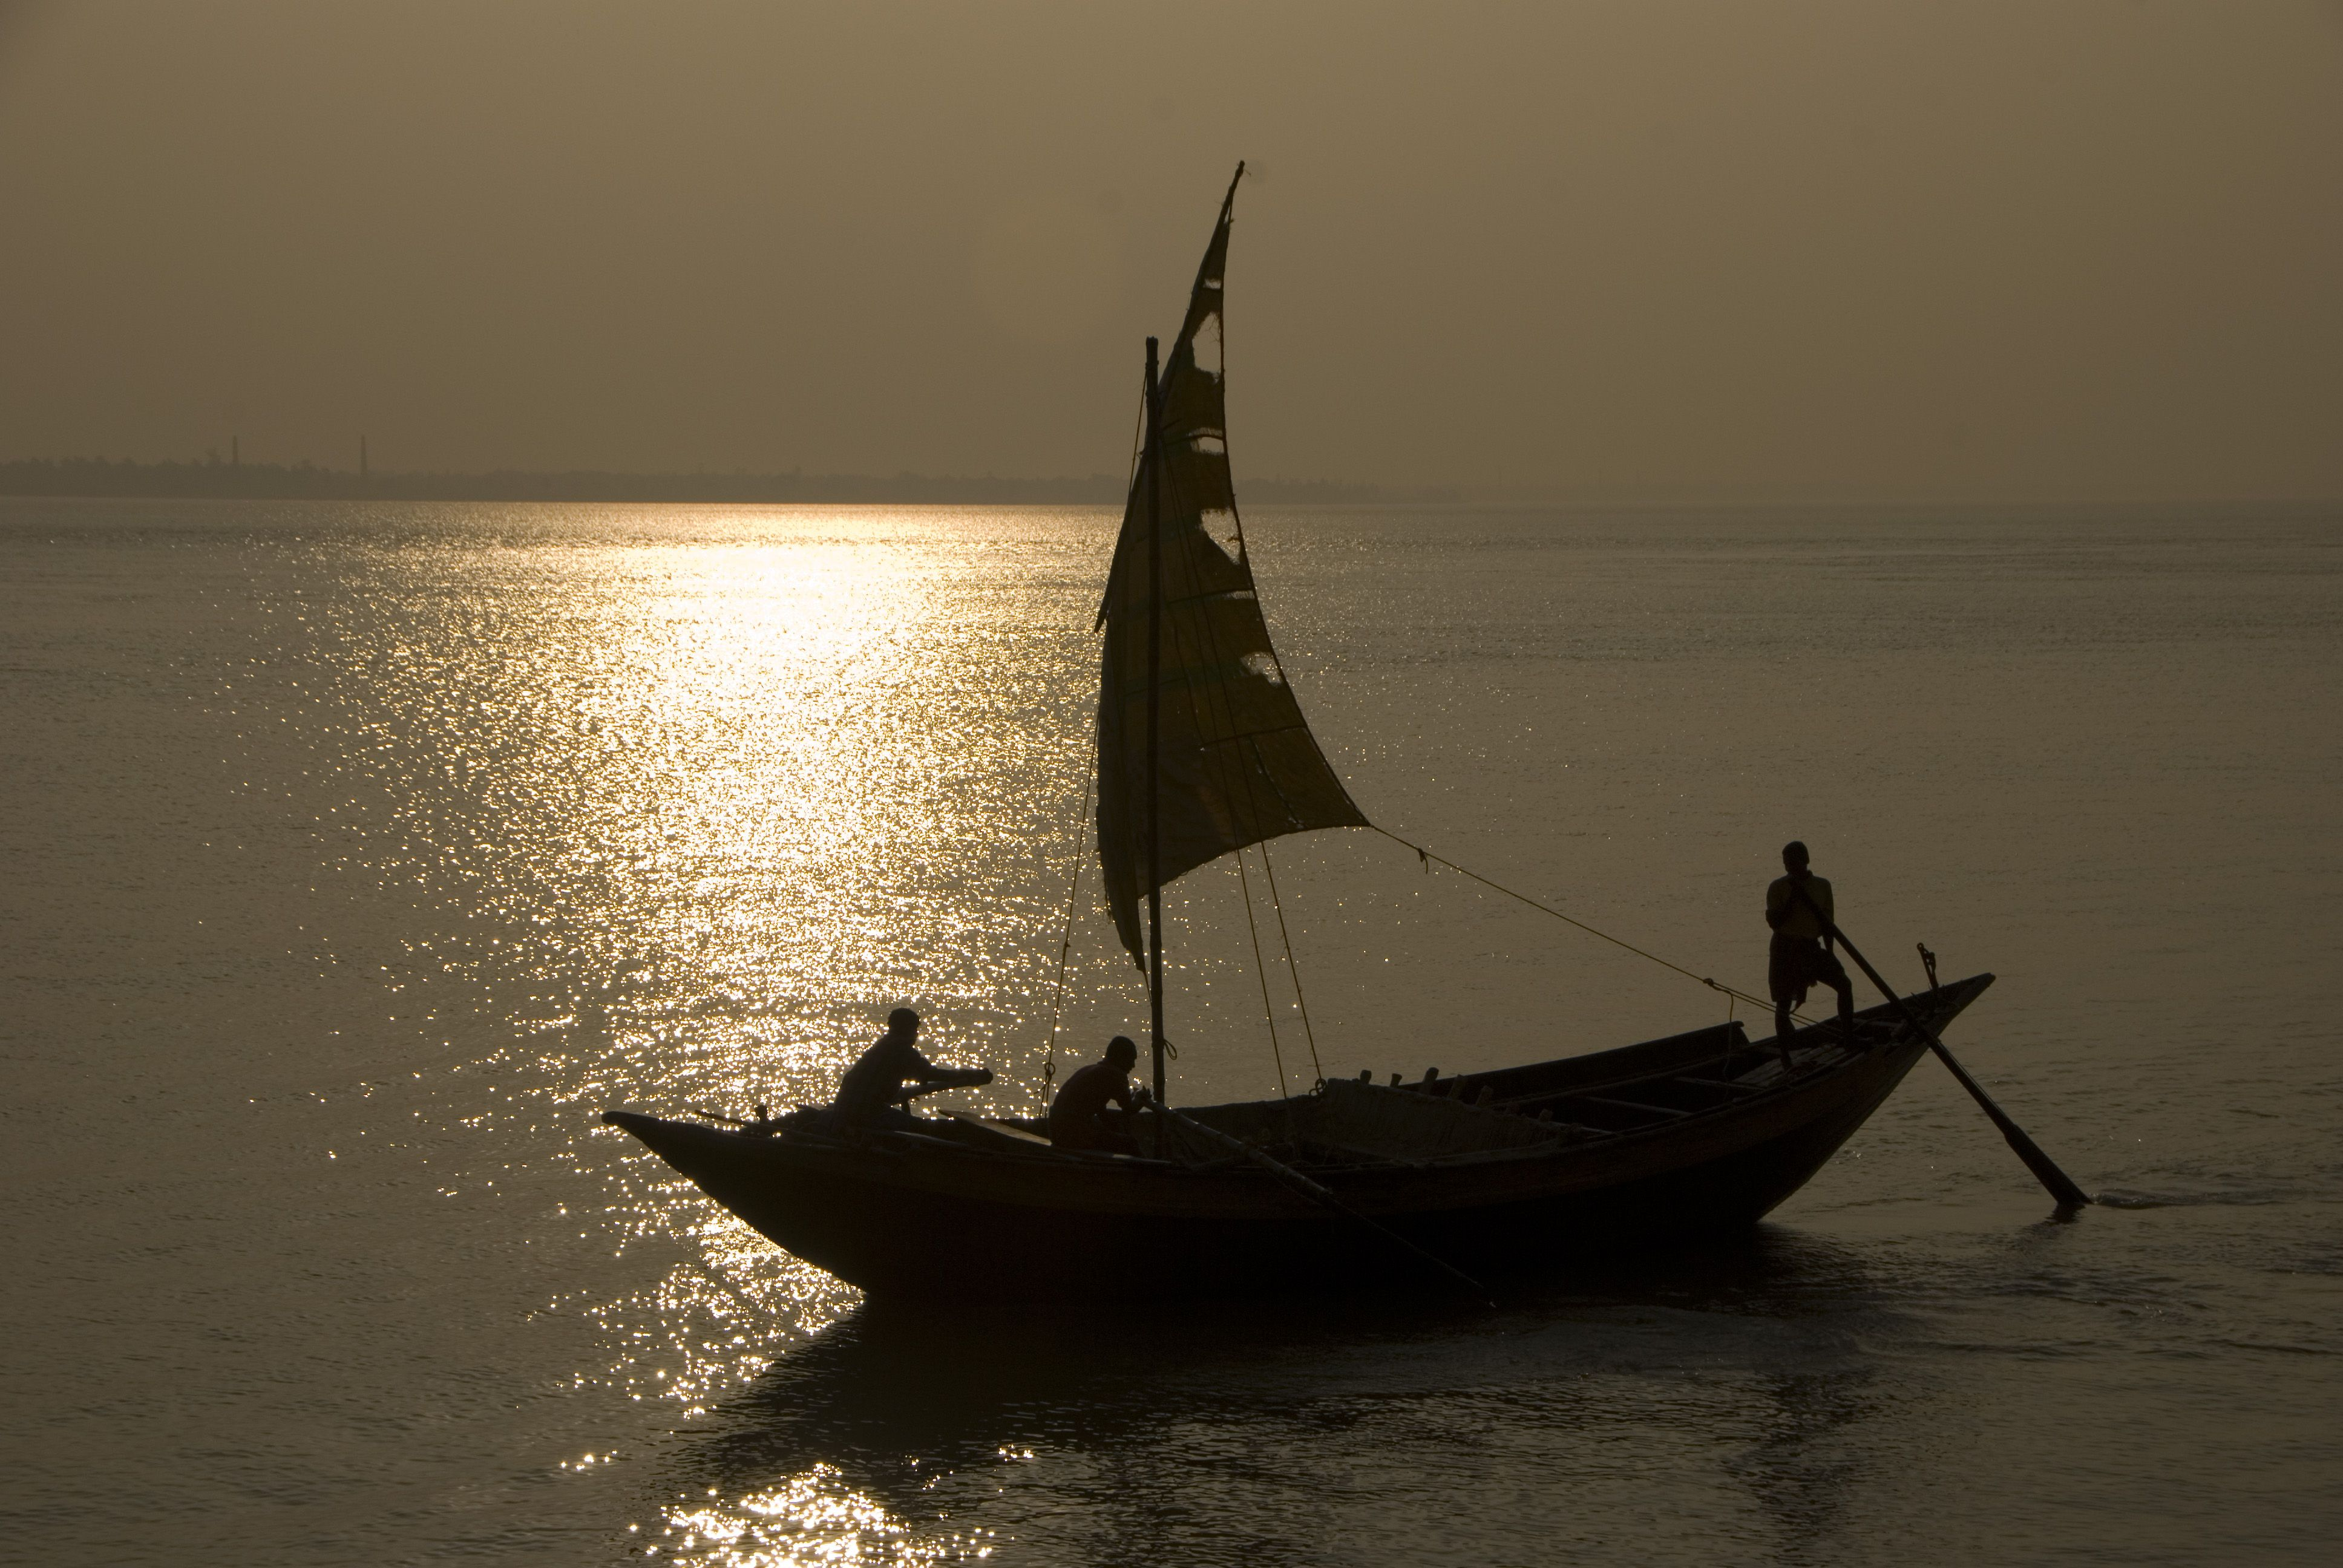 Boat returns to the banks as the sun sets.